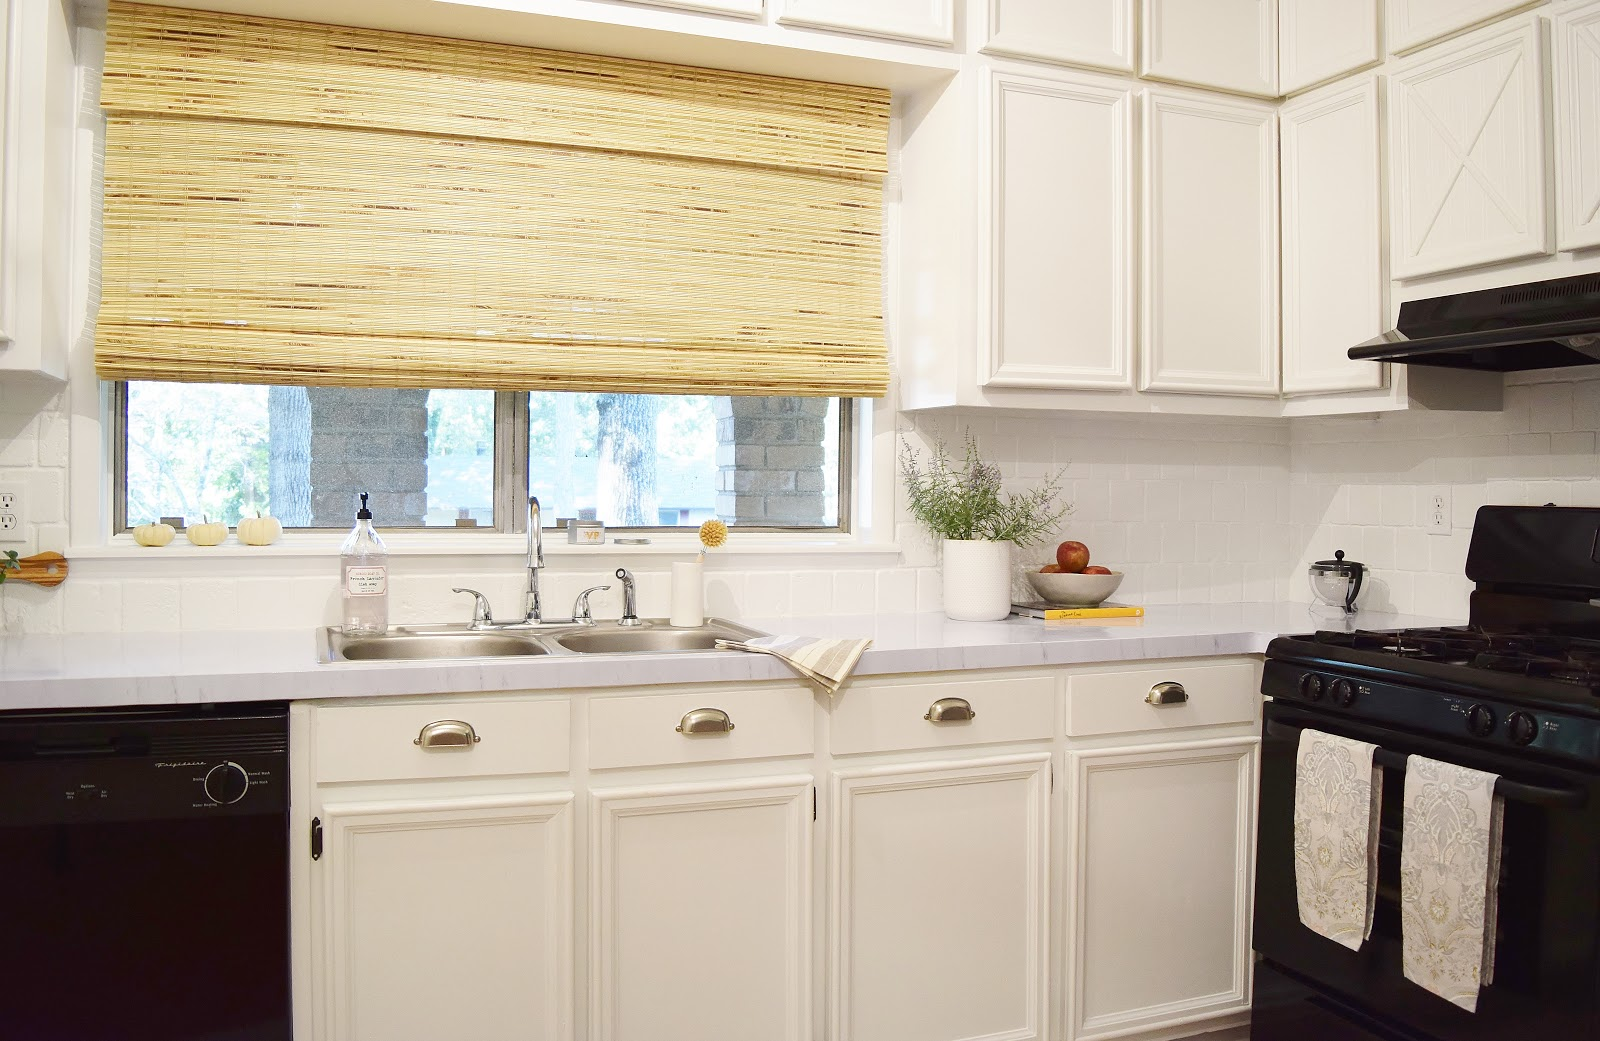 Budget Friendly Kitchen Makeover: Don't Disturb This Groove: Budget Friendly Before-and